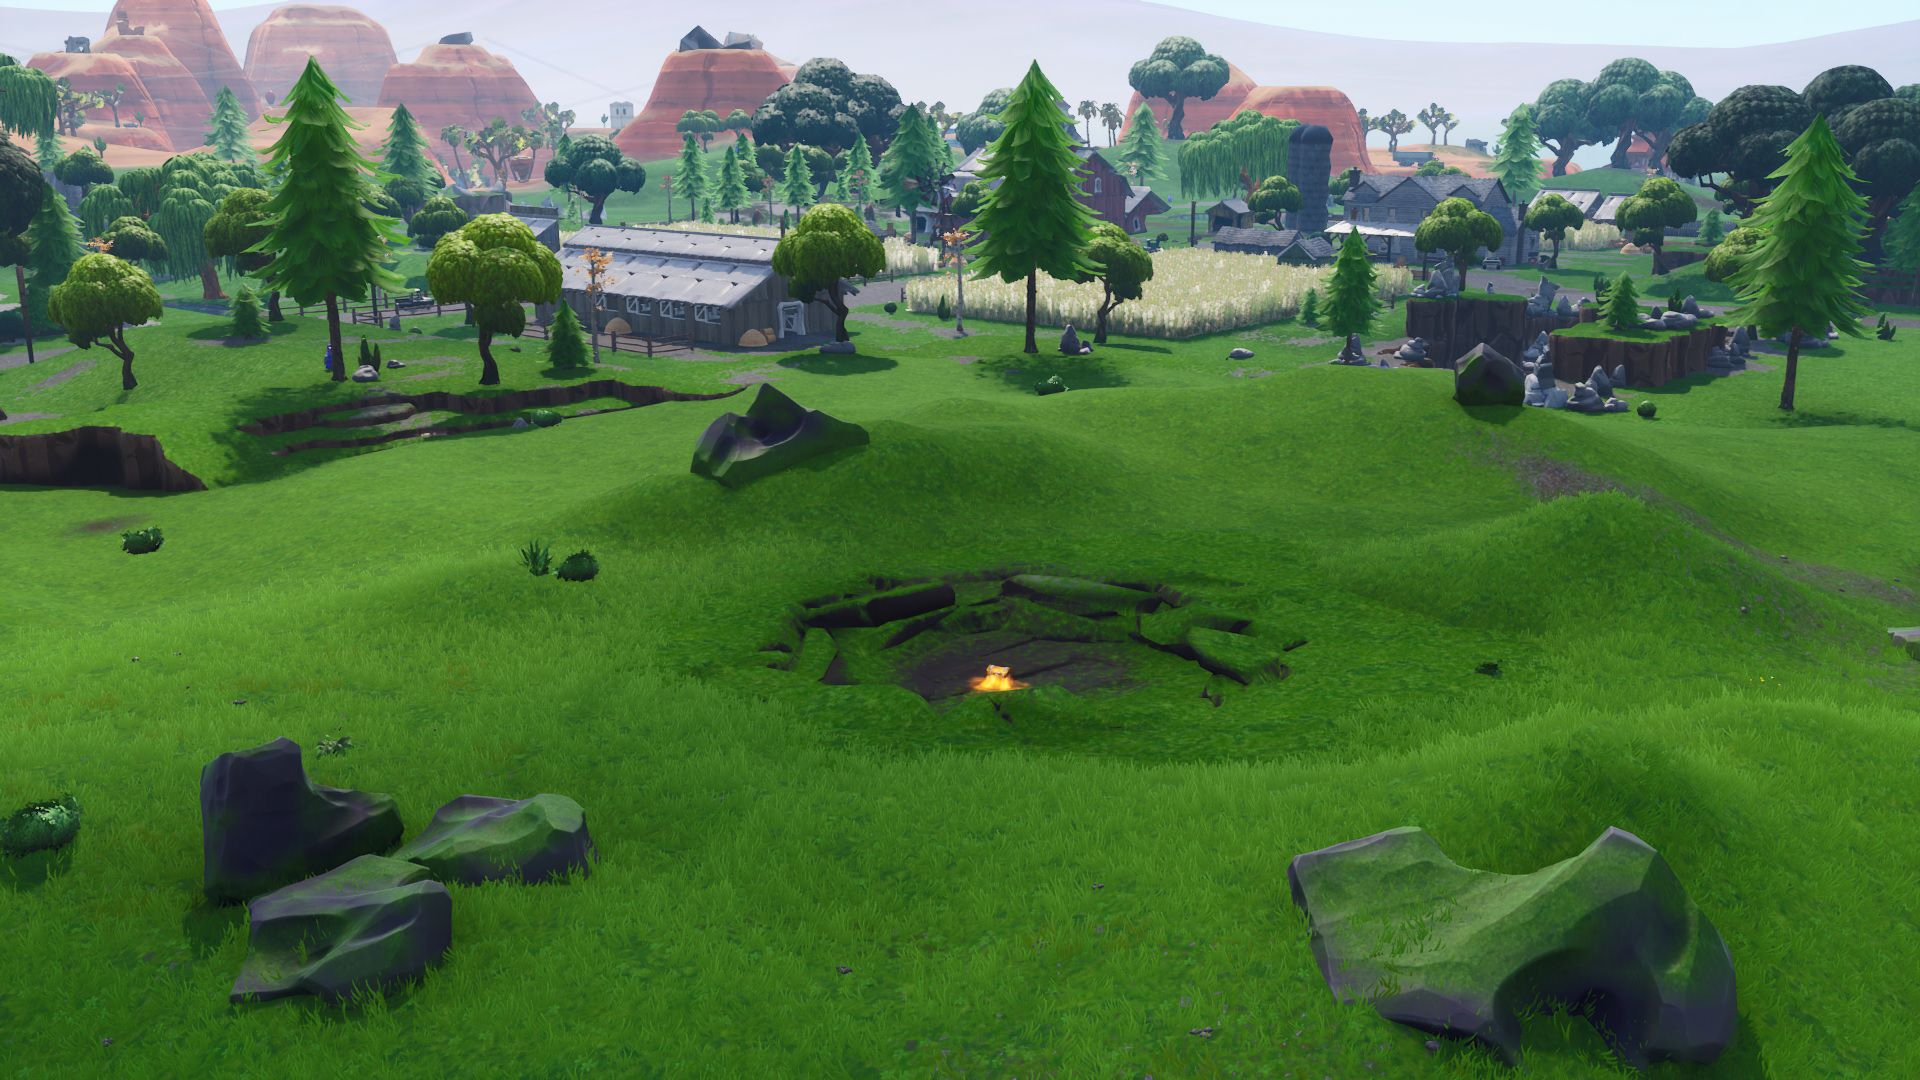 Fortnite Corrupted Areas Grass